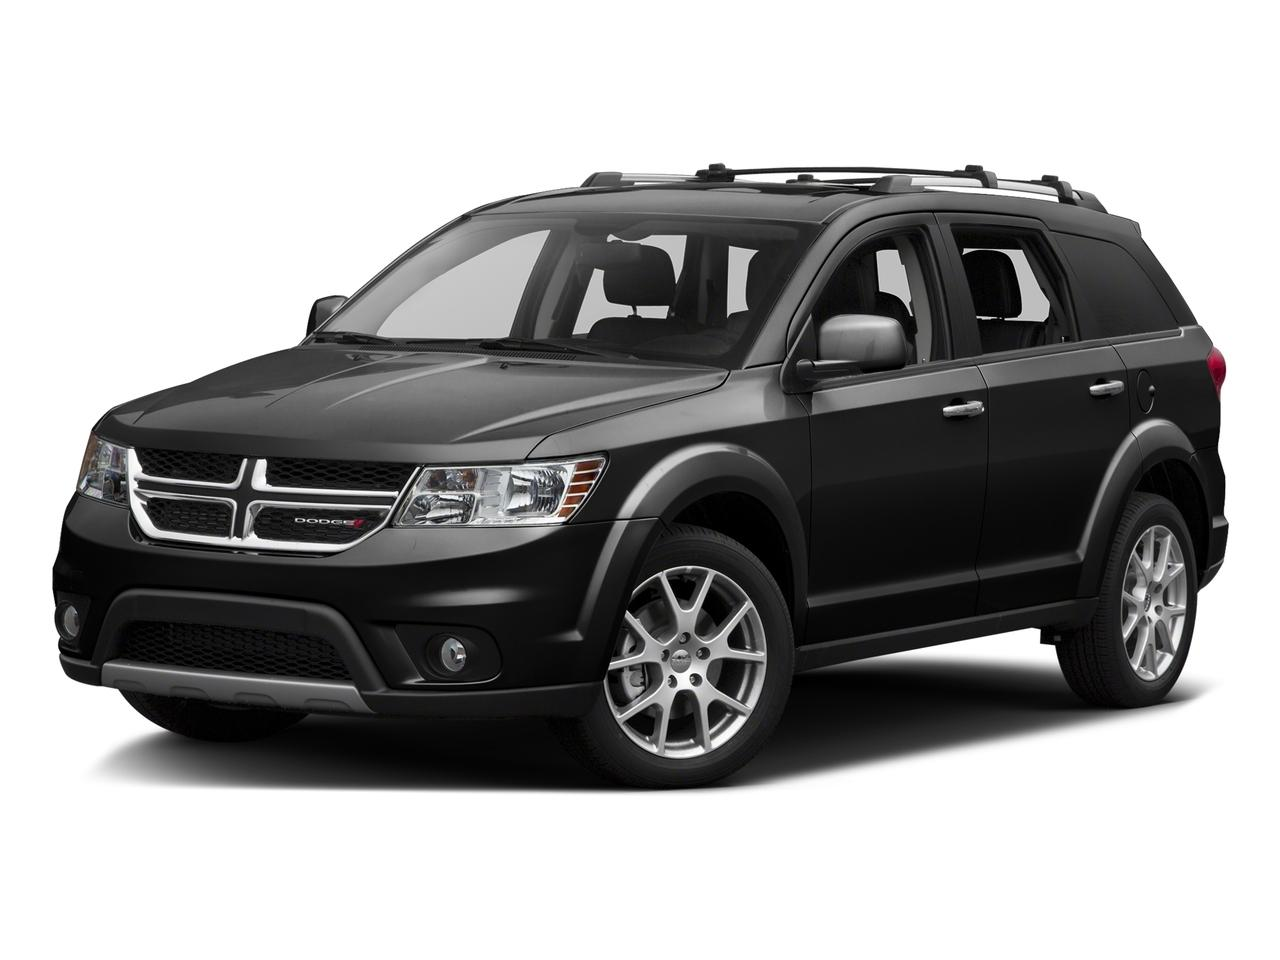 2016 Dodge Journey Vehicle Photo in Colma, CA 94014